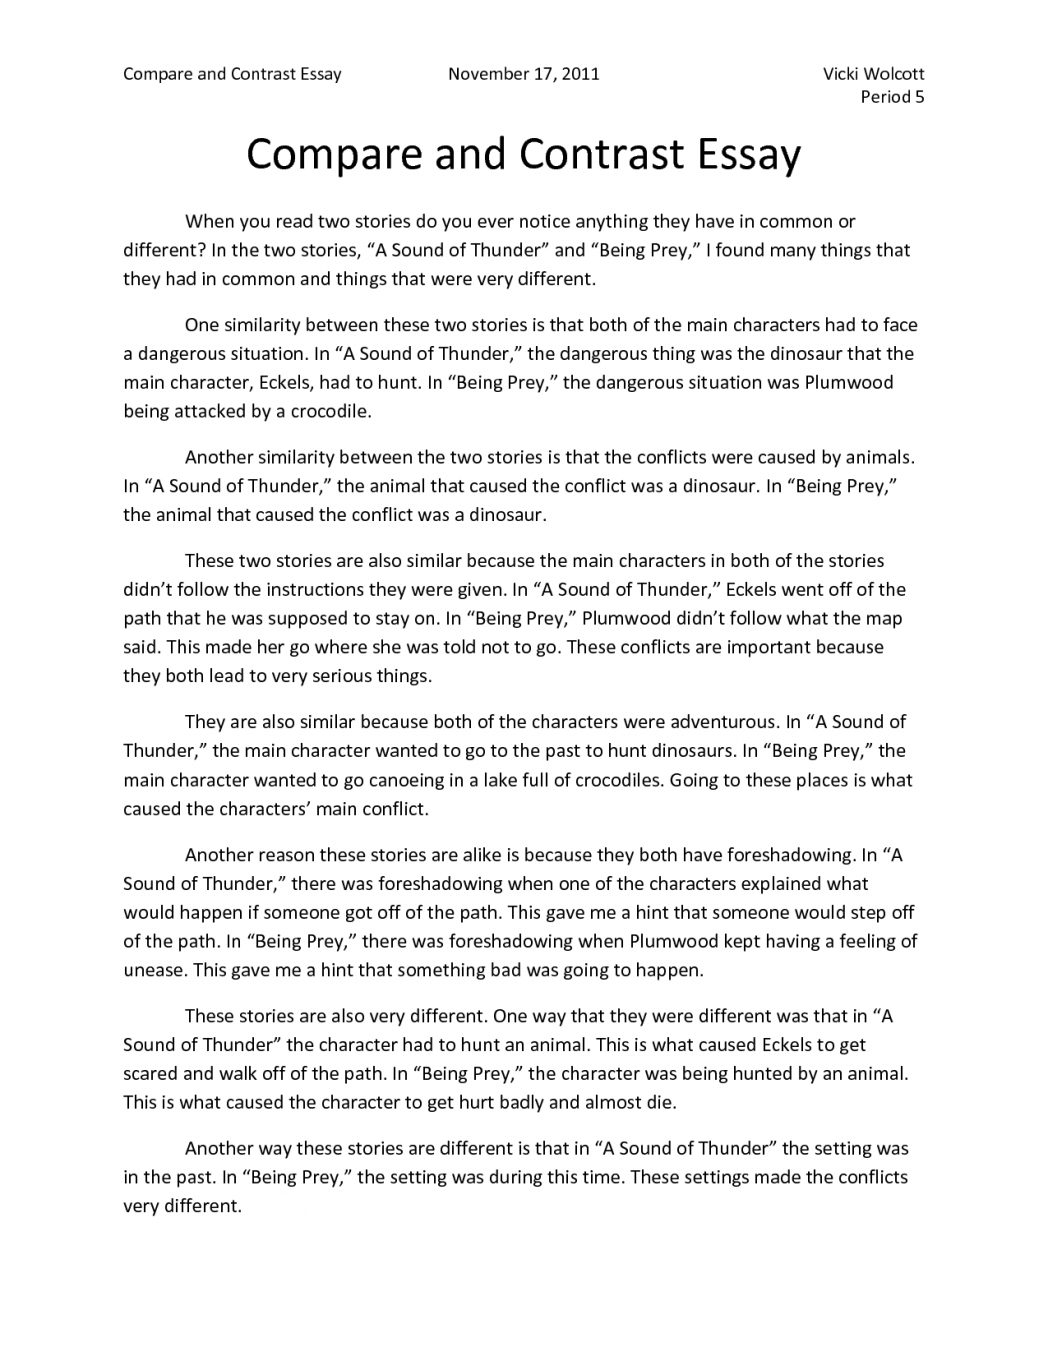 014 Conclusion For Compare And Contrast Essay Writing Comparison Argumentative Example How To Write An Samples Awesome A Paragraph Examples Full